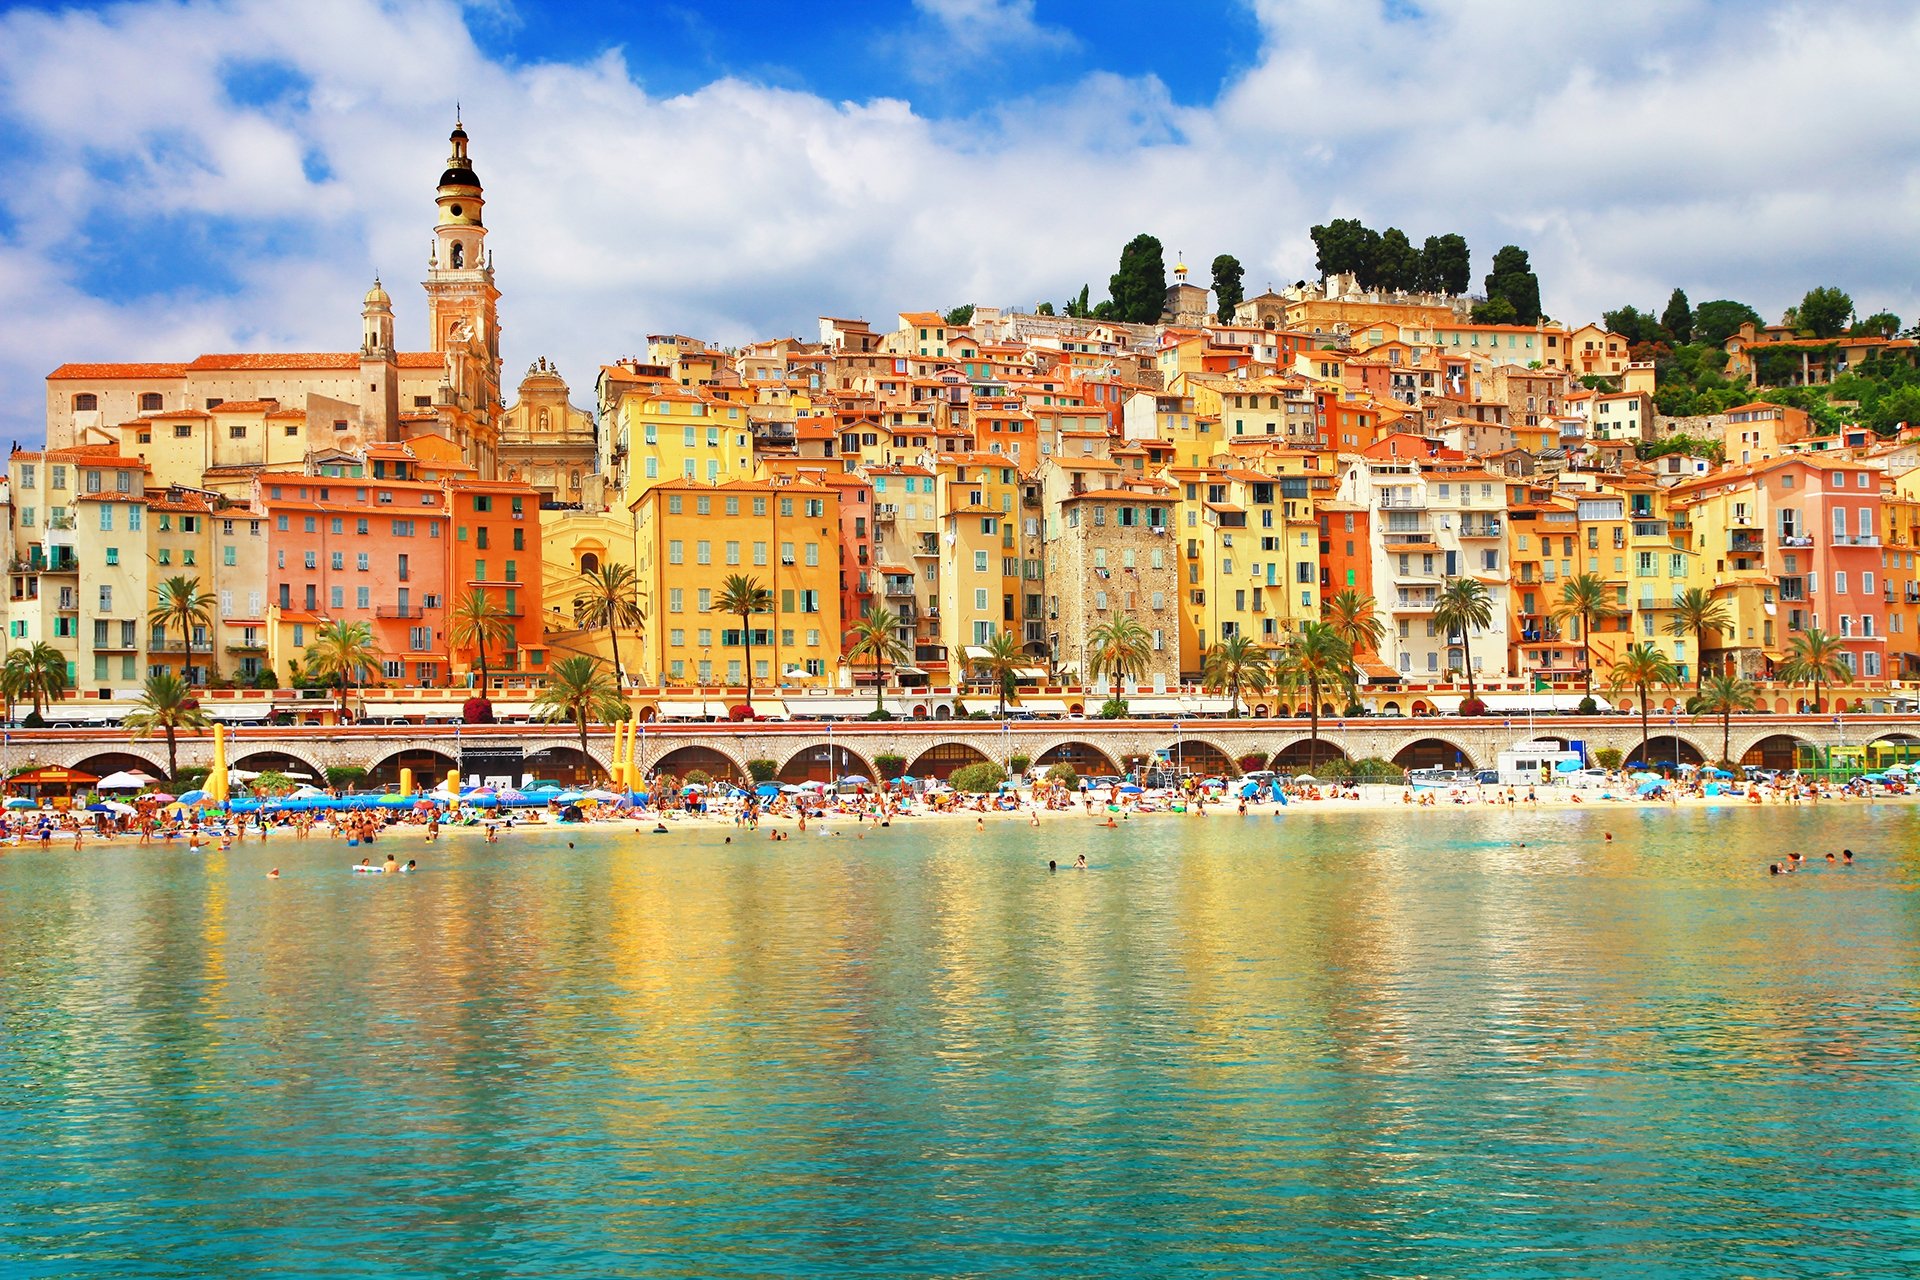 Sunny-Menton-south-of-France